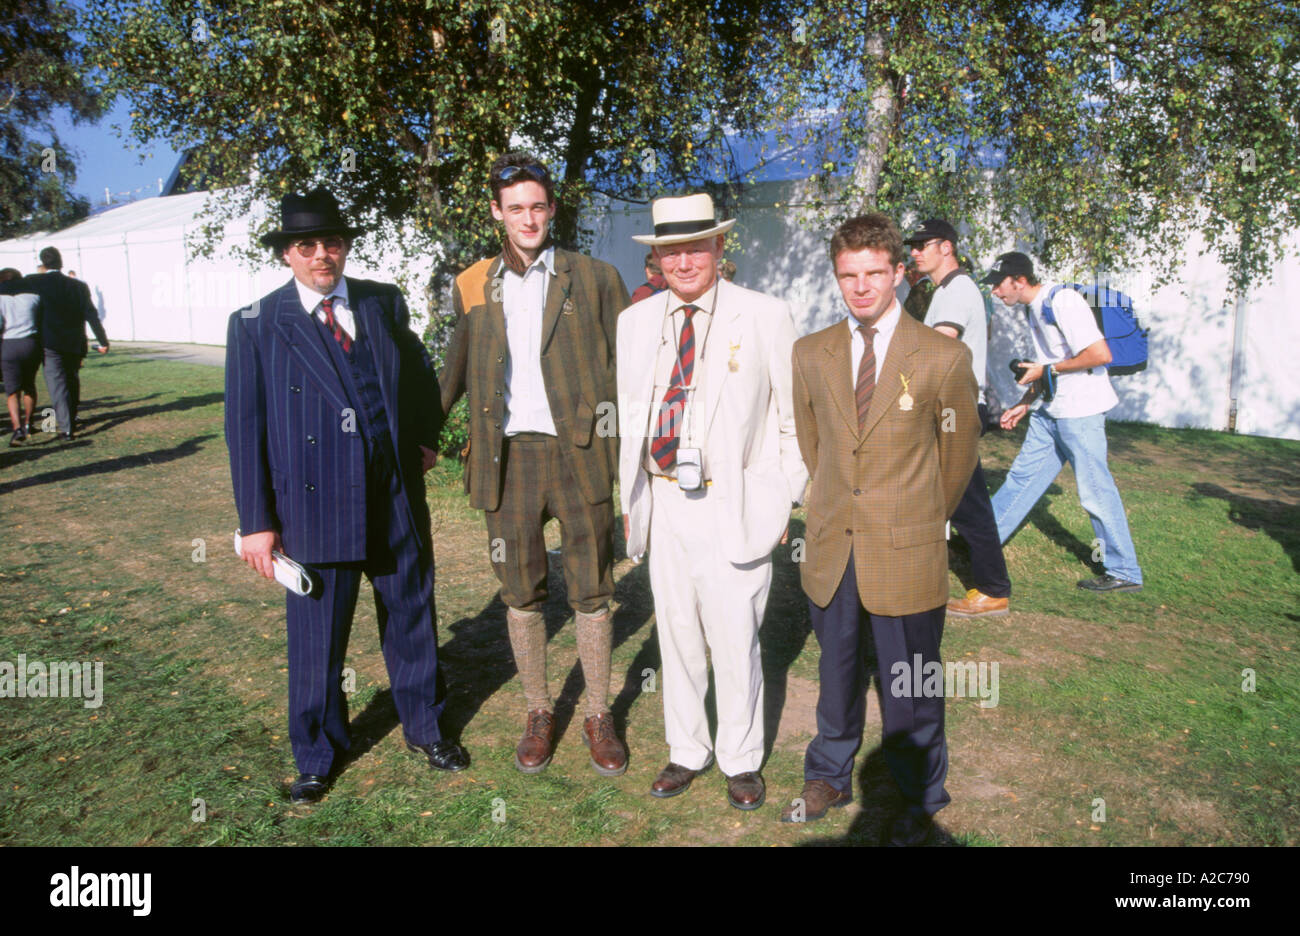 1998 Good wood revival Lord Montagu Jonathan Montagu Justin Keen - Stock Image